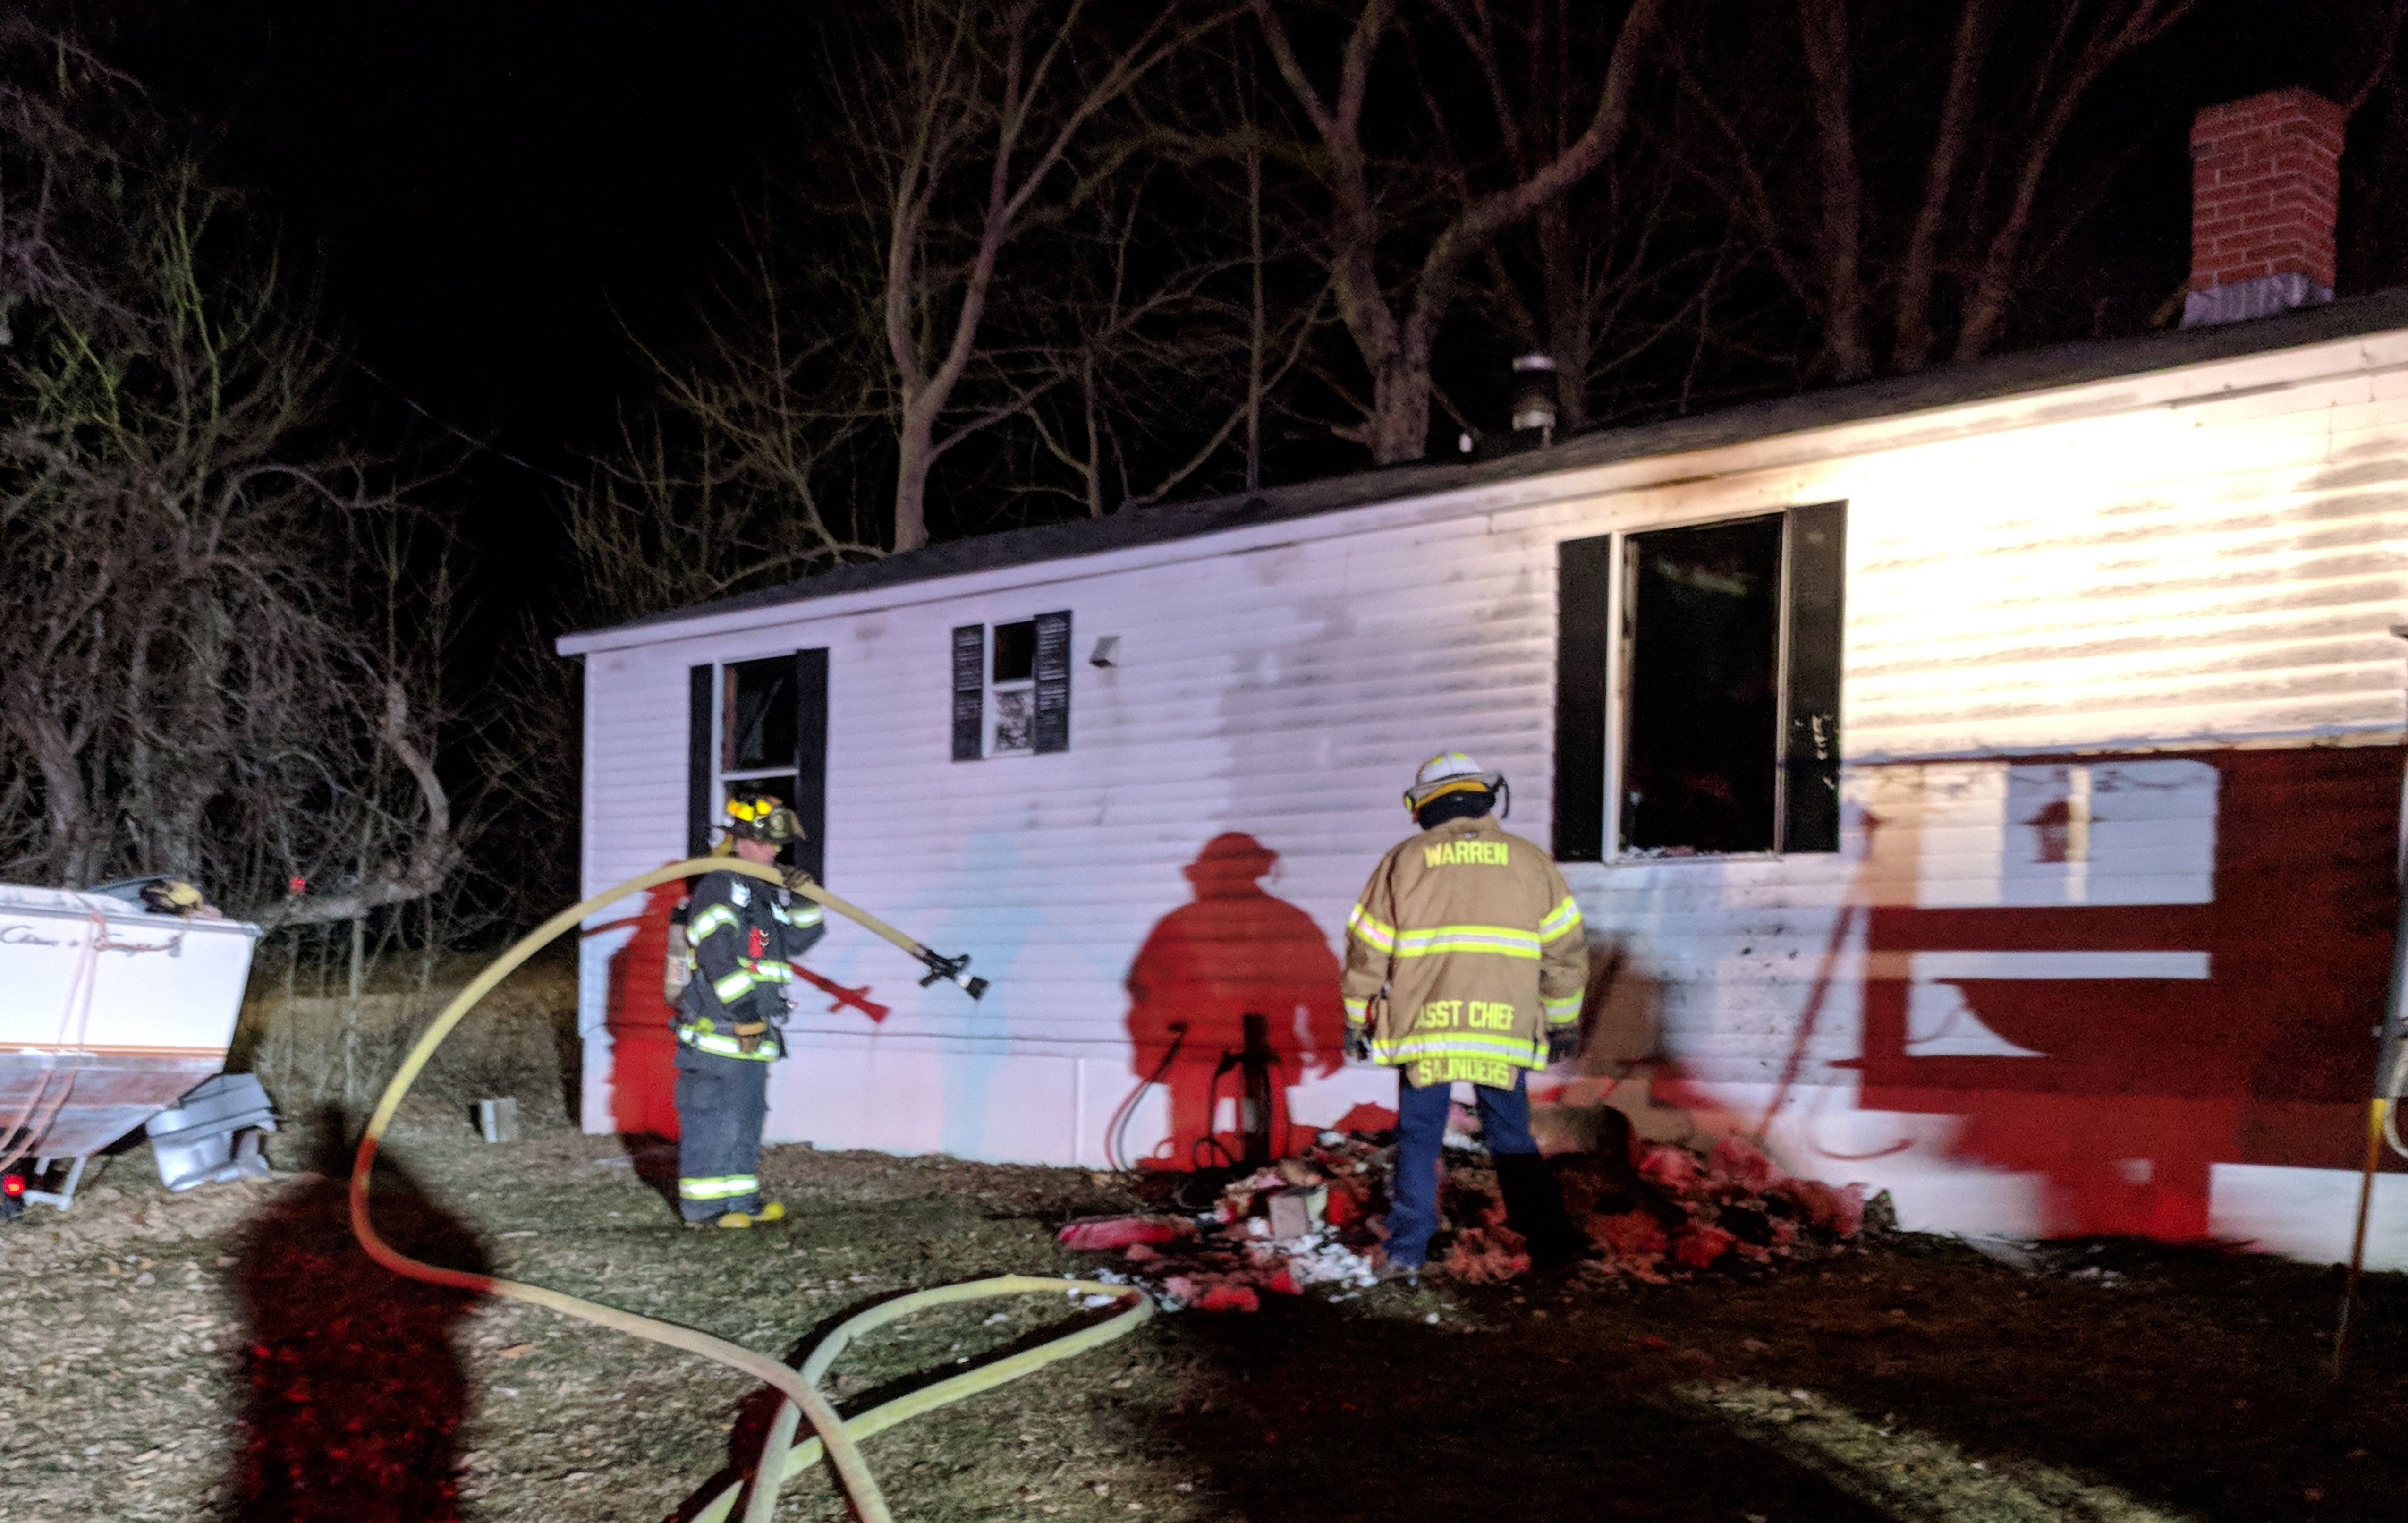 Firefighters on the scene of a structure fire in Waldoboro during the evening of Tuesday, April 2. (Alexander Violo photo)